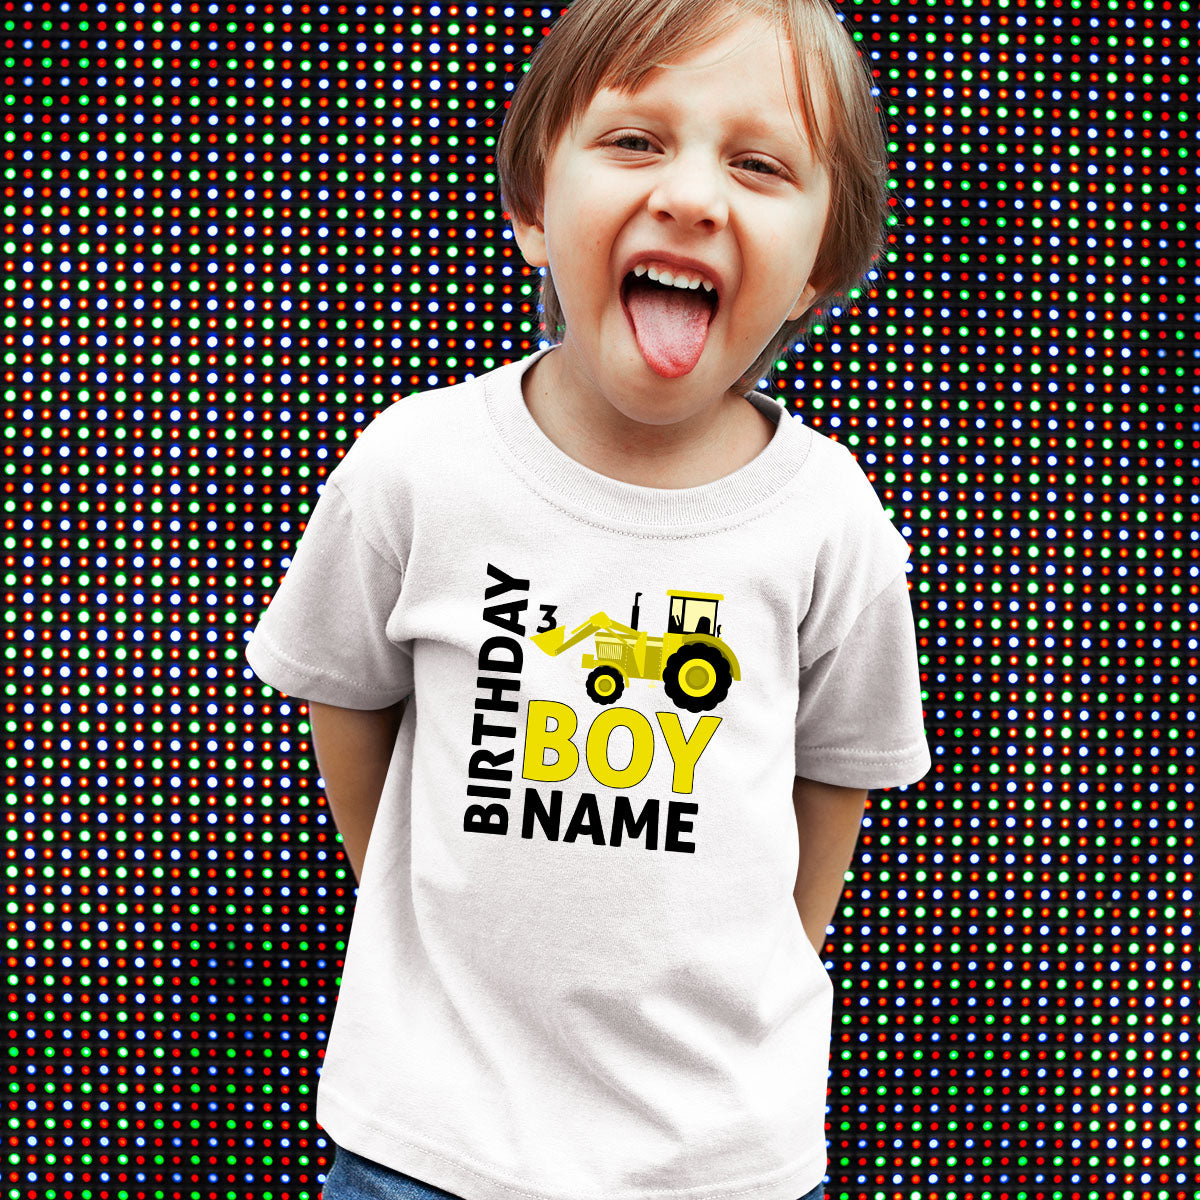 Sprinklecart Surprise Gift for Your 3rd Birthday Dress | Customized Name Printed | Birthday Boy | Kids Birthday T Shirt